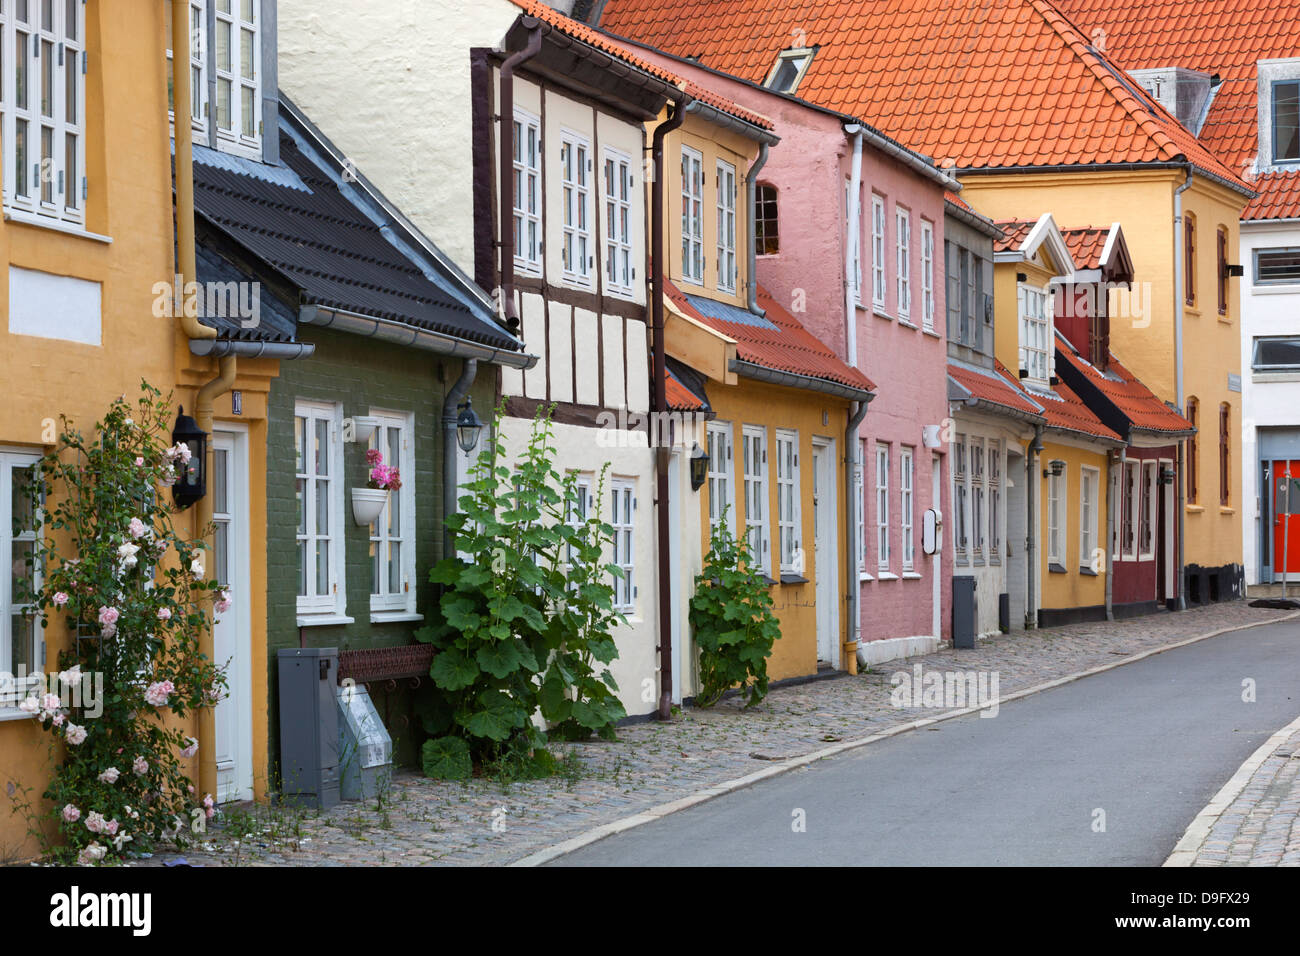 Houses in the old town, Aalborg, Jutland, Denmark, Scandinavia - Stock Image